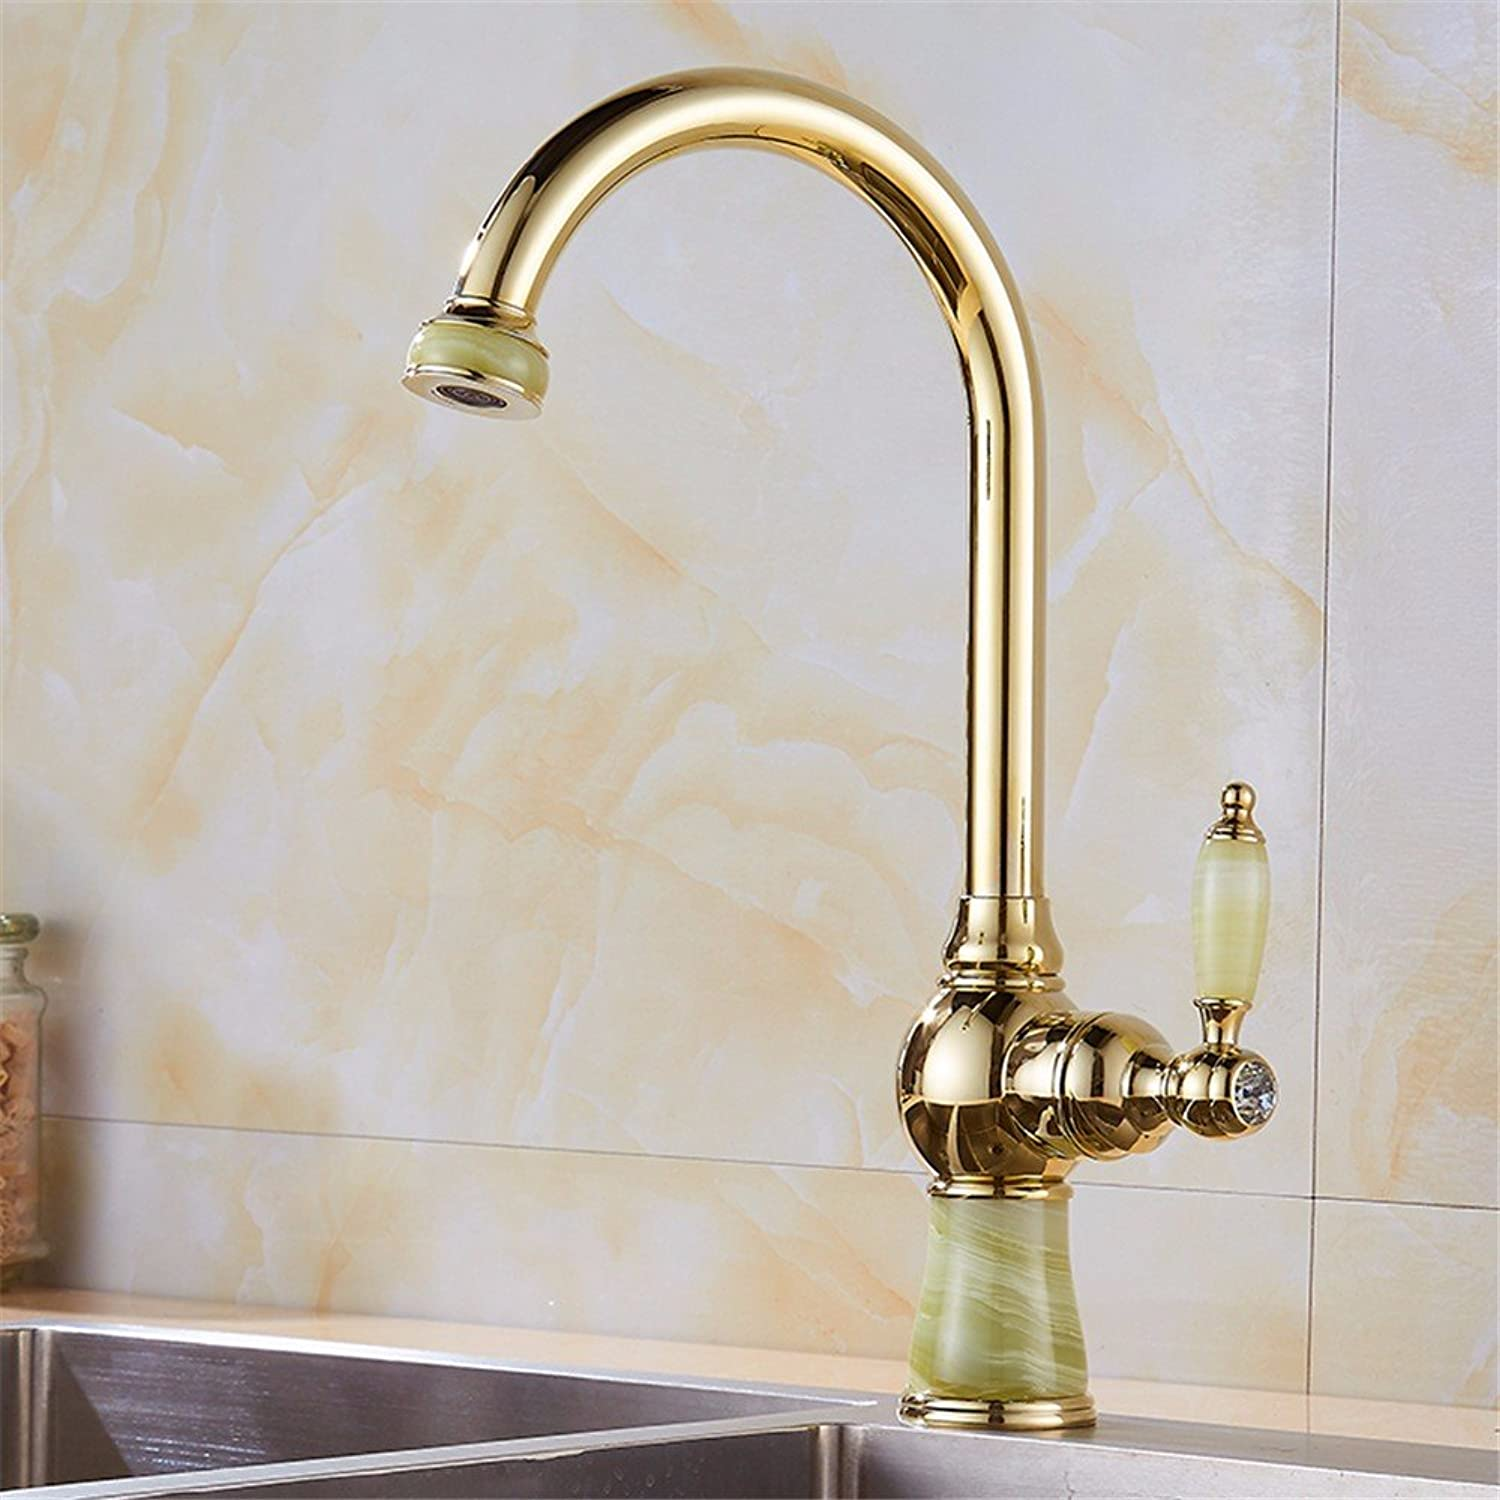 Bijjaladeva Antique Bathroom Sink Vessel Faucet Basin Mixer Tap The Kitchen dish washing basin faucet sink bowl pool hot and cold Jade Dragon full copper gold to redate the faucet